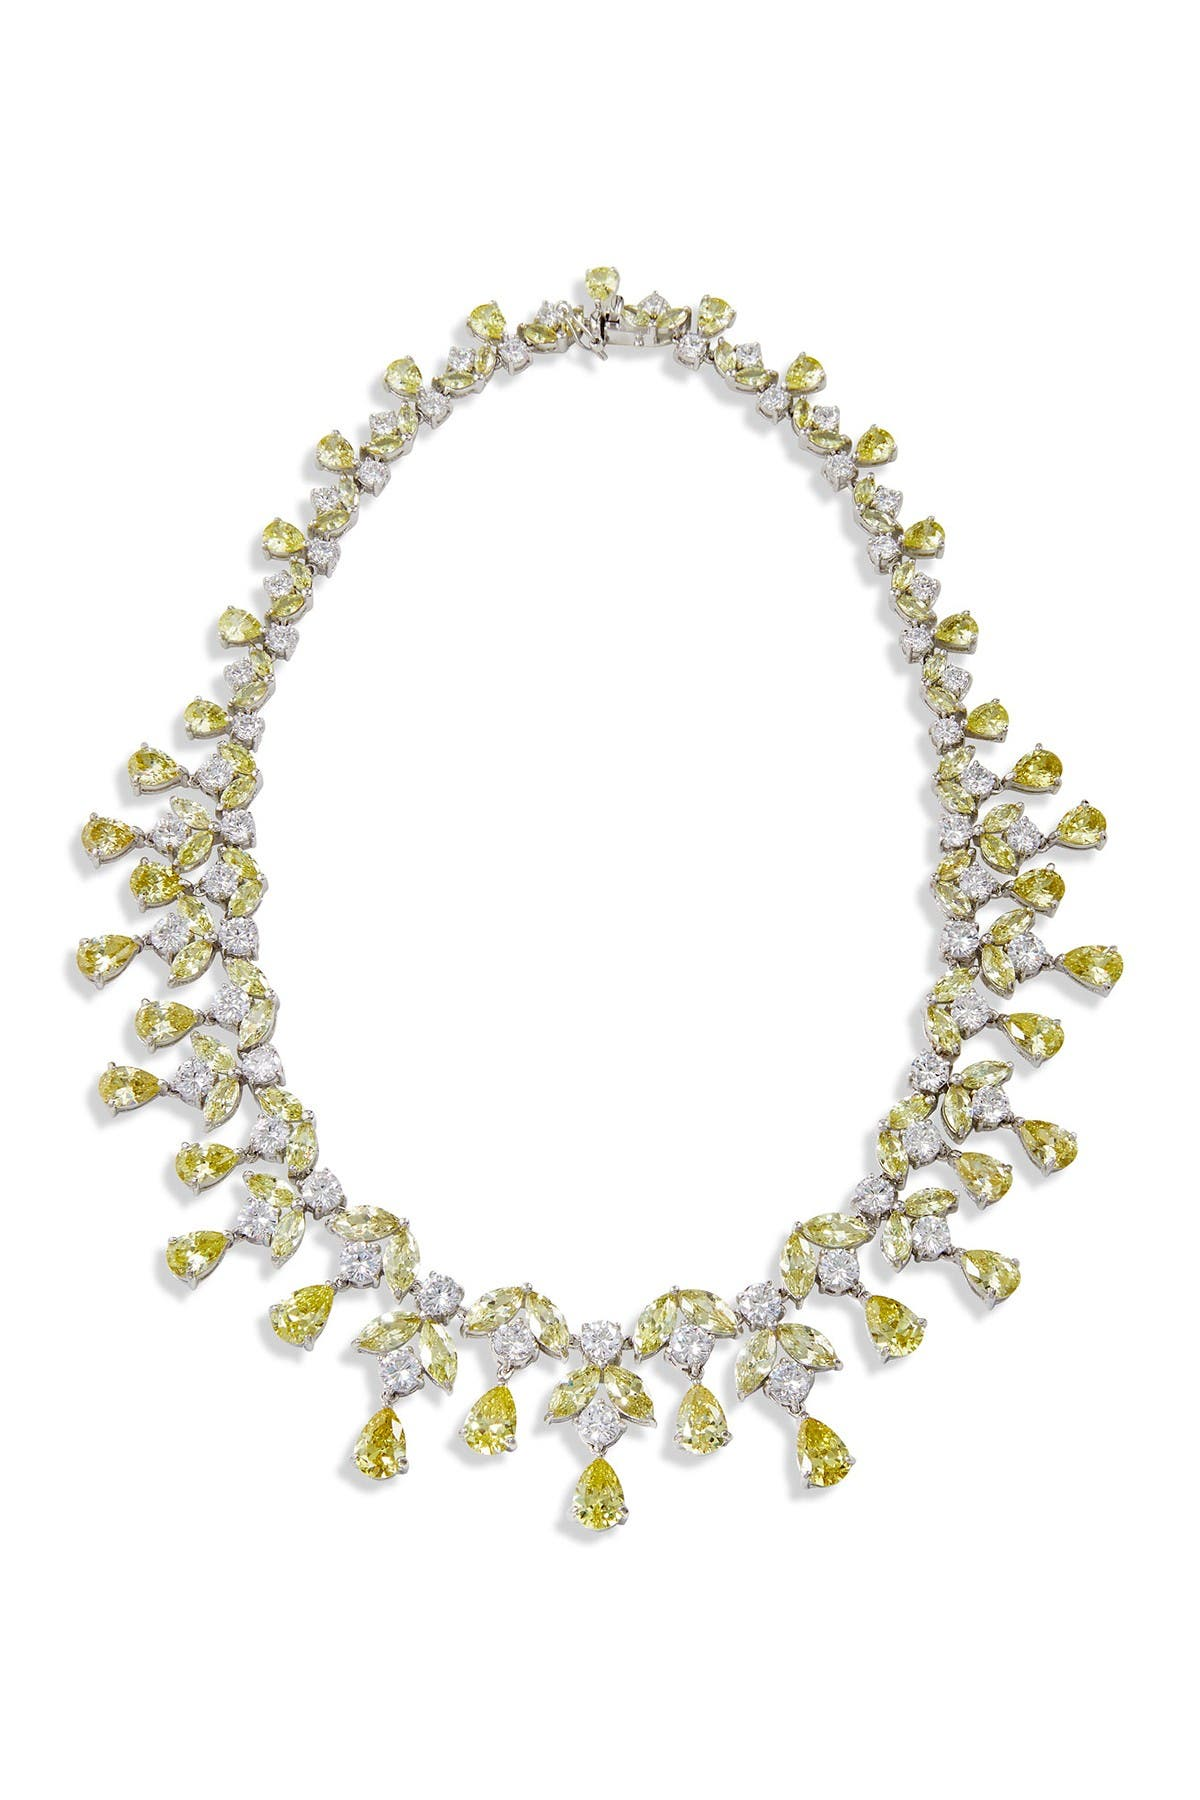 Image of Savvy Cie Sterling Silver Two-Tone Statement Necklace